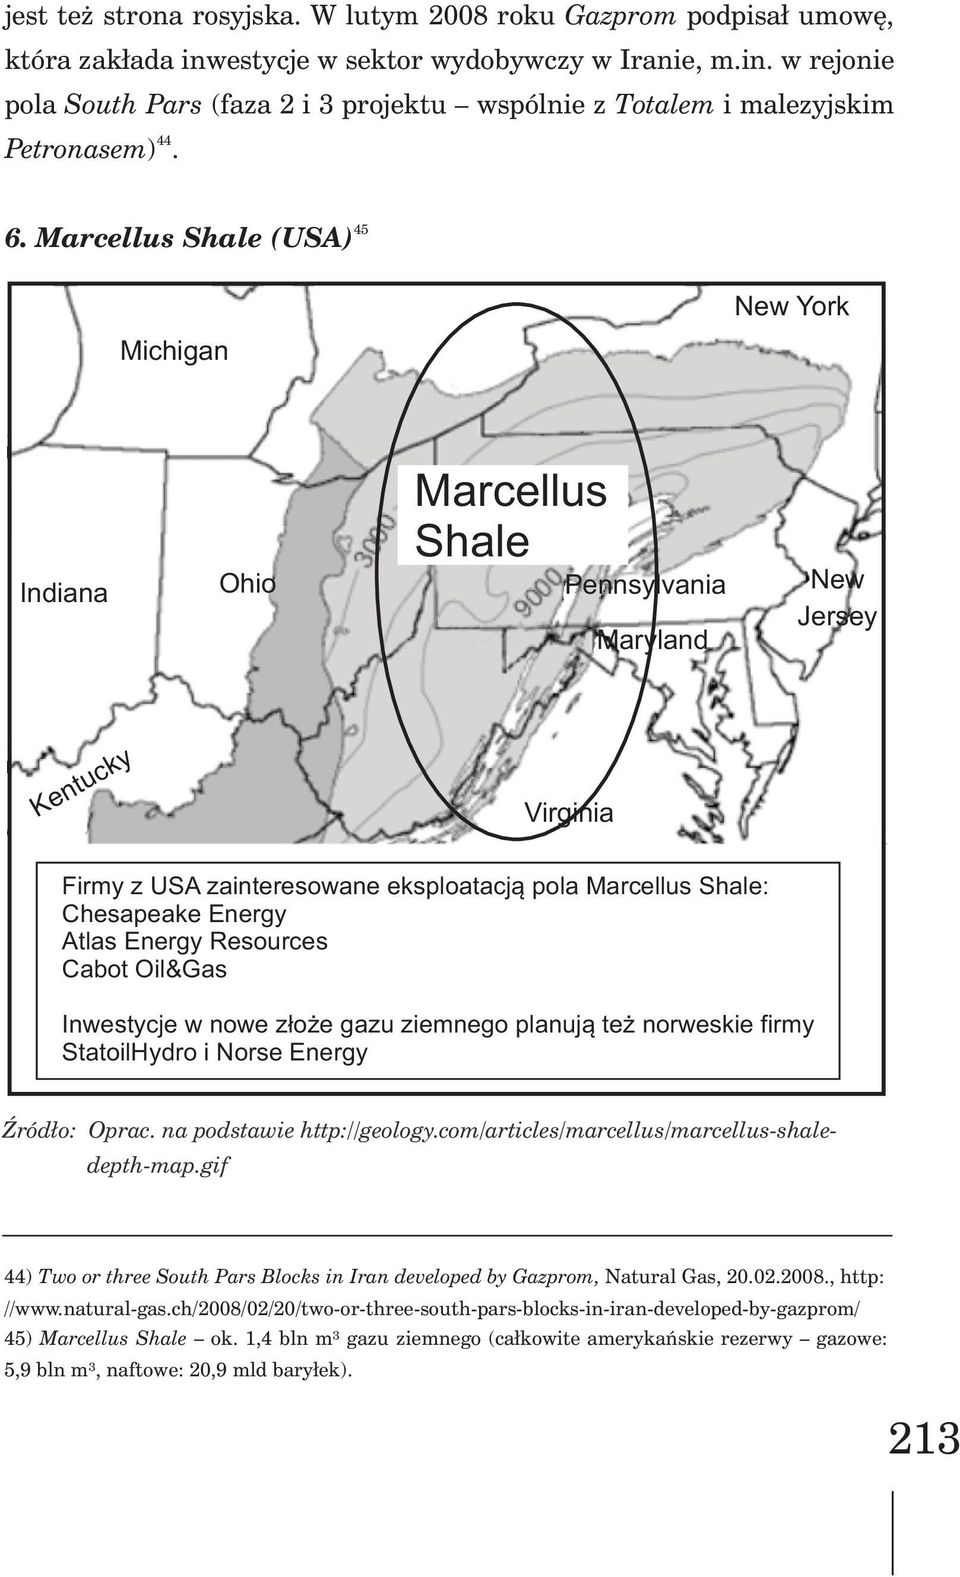 Marcellus Shale (USA) New York Michigan Indiana Ohio Marcellus Shale Pennsylvania Maryland New Jersey Kentucky Virginia Firmy z USA zainteresowane eksploatacj¹ pola Marcellus Shale: Chesapeake Energy